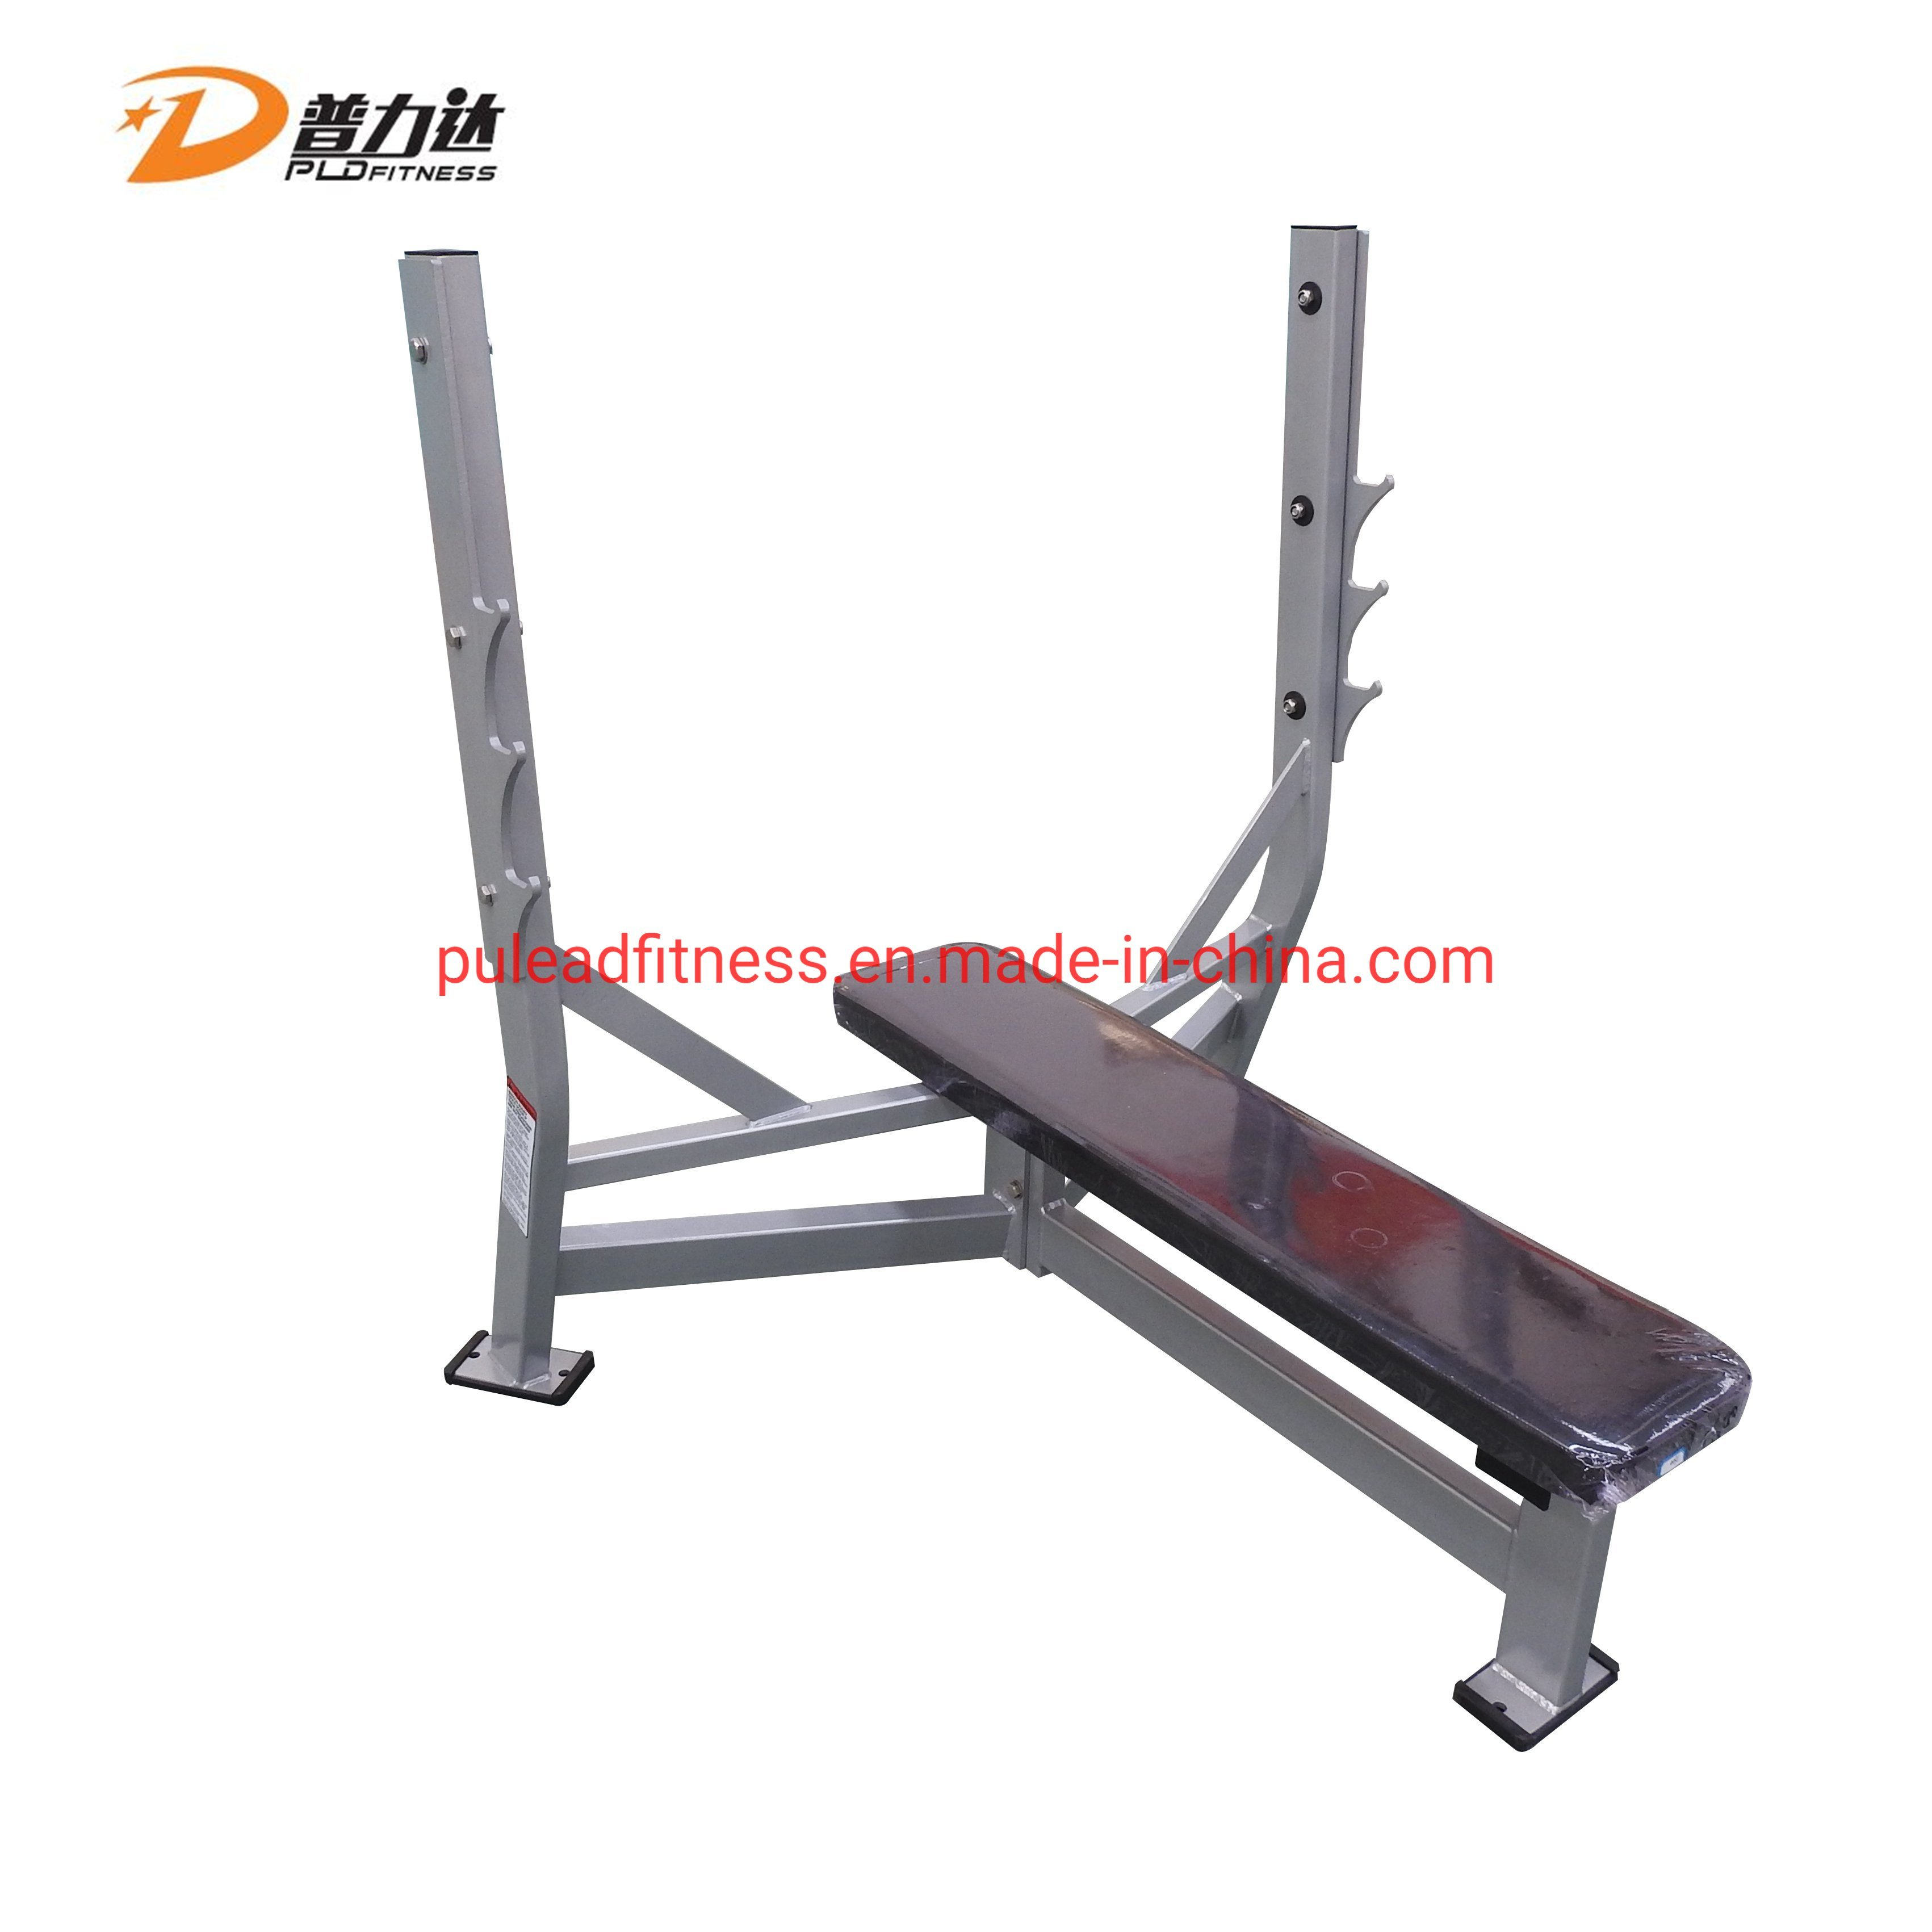 Astonishing Hot Item Commercial Gym Hammer Strength Machine Olympic Flat Bench For Gym Equipment Andrewgaddart Wooden Chair Designs For Living Room Andrewgaddartcom